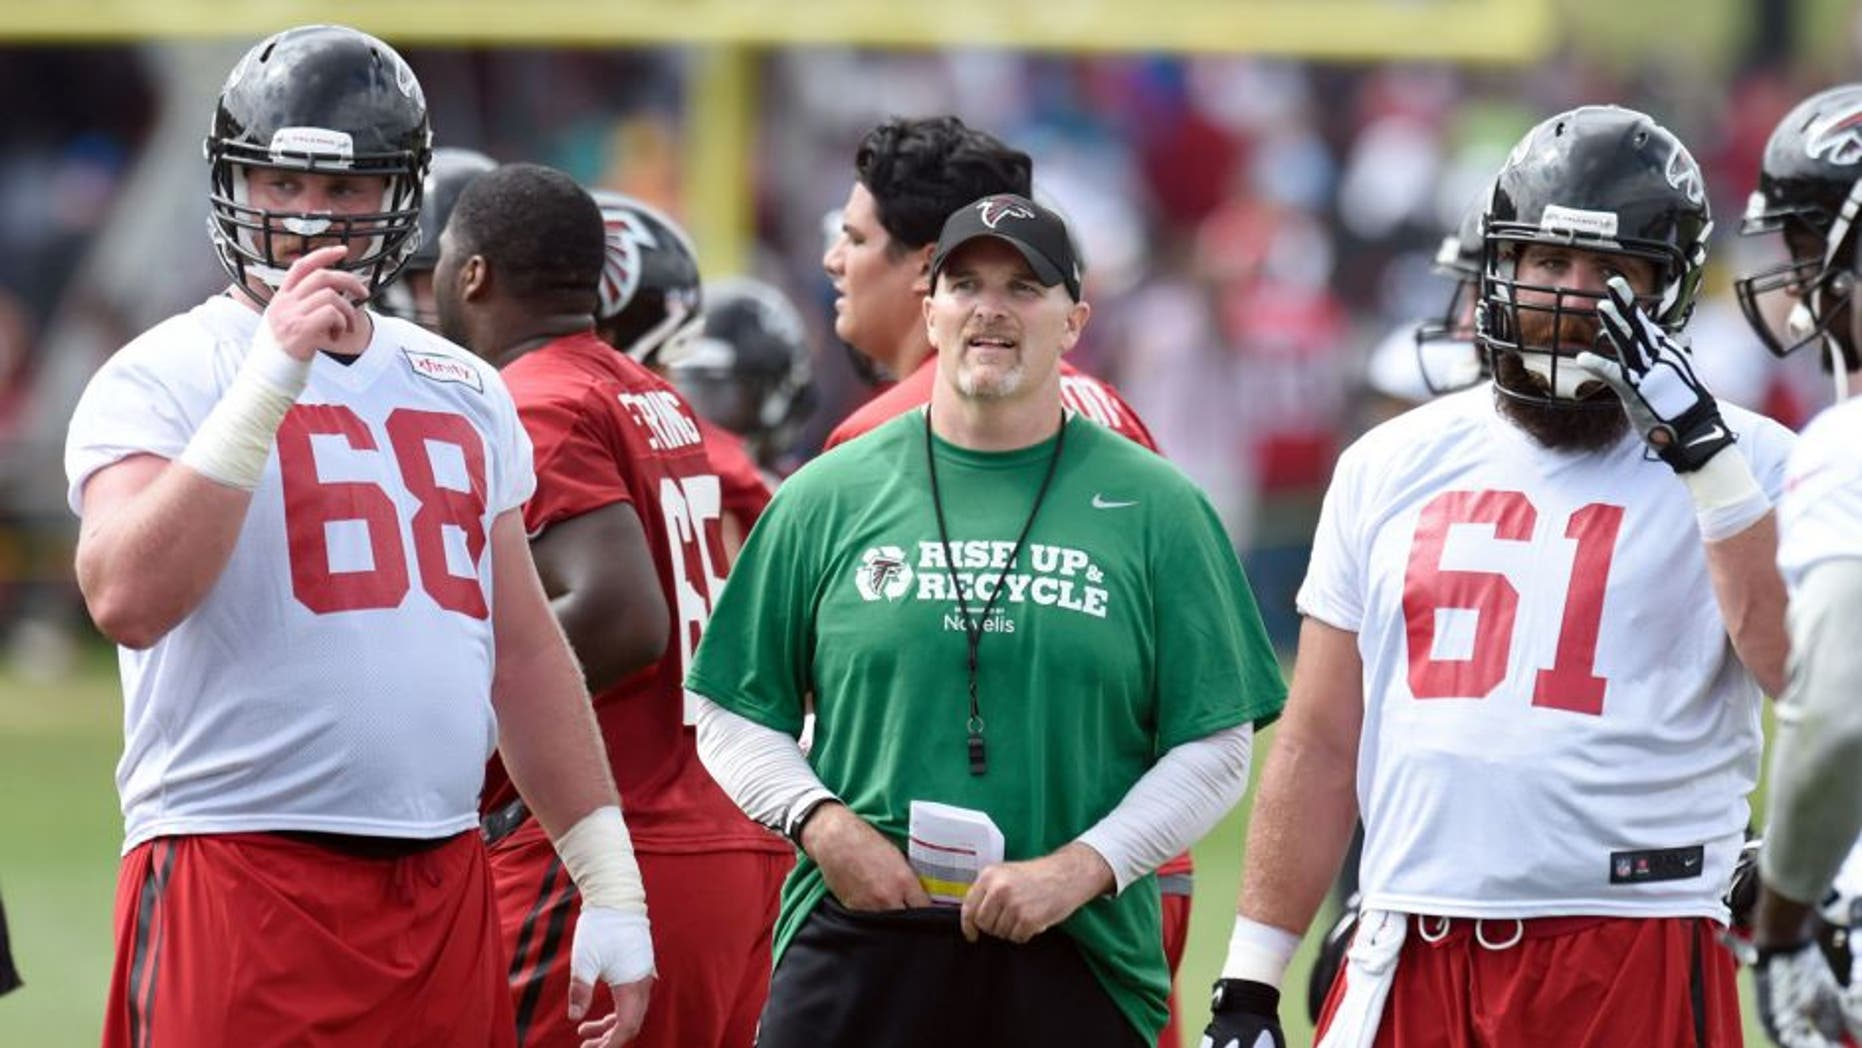 Aug 1, 2015; Atlanta, GA, USA; Atlanta Falcons head coach Dan Quinn shown on the field with players tackle Mike Person (68) and center Joe Hawley (61) during training camp at the Flowery Branch Training Facility. Mandatory Credit: Dale Zanine-USA TODAY Sports